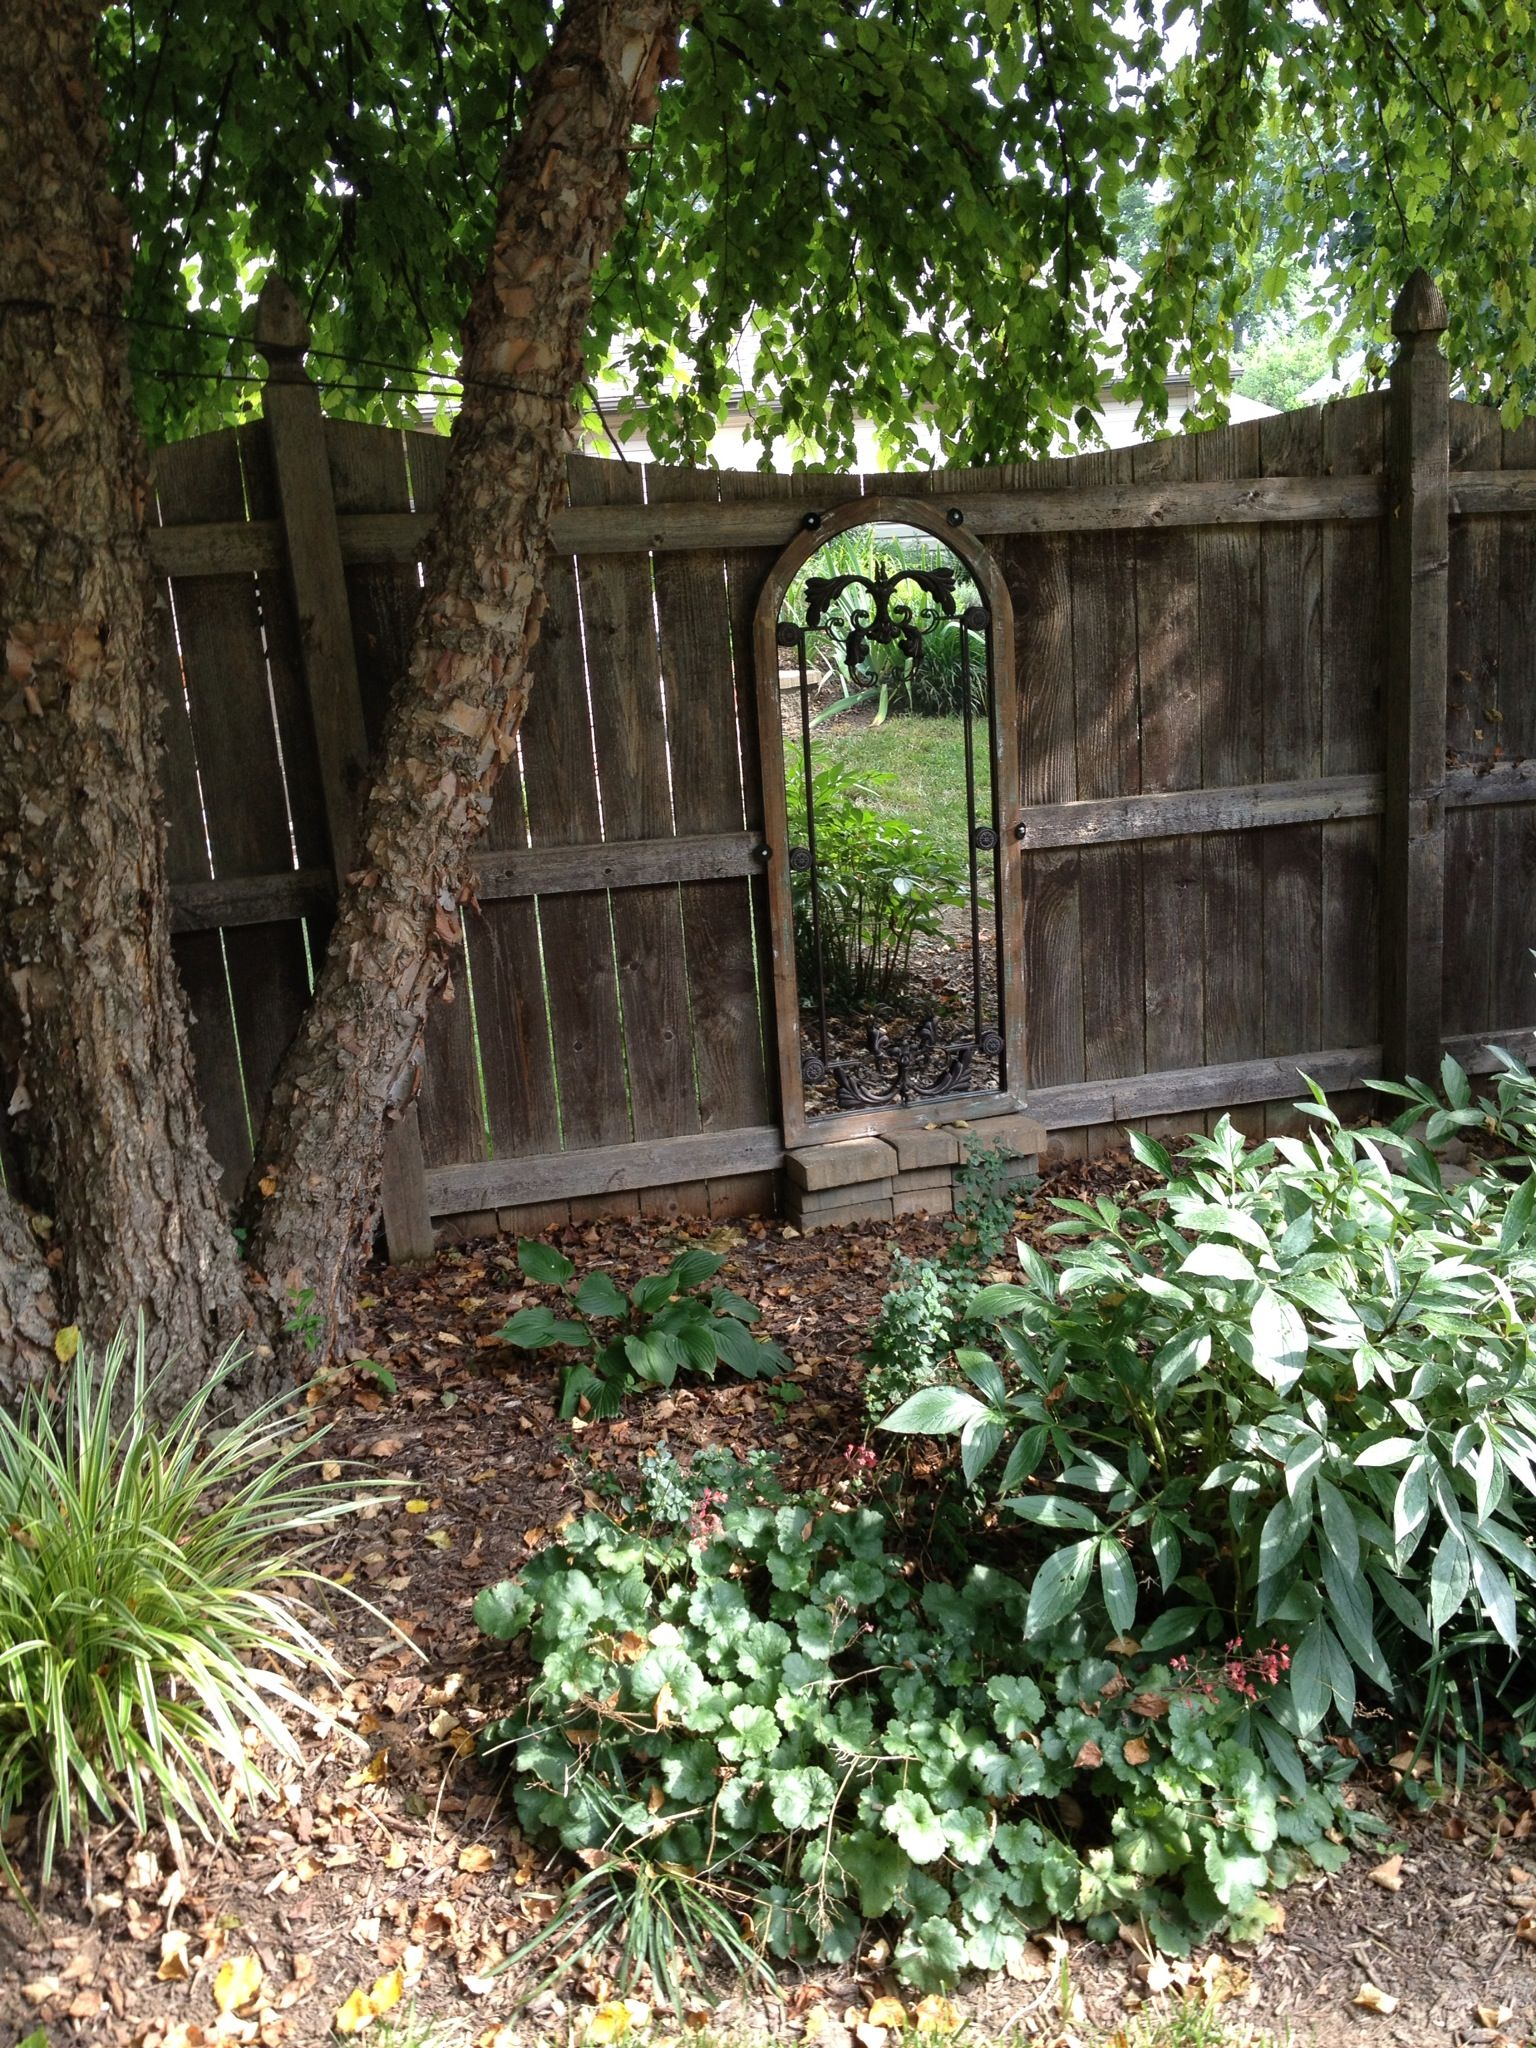 Attached A Mirror To The Garden Fence Gives The Appearance Of An